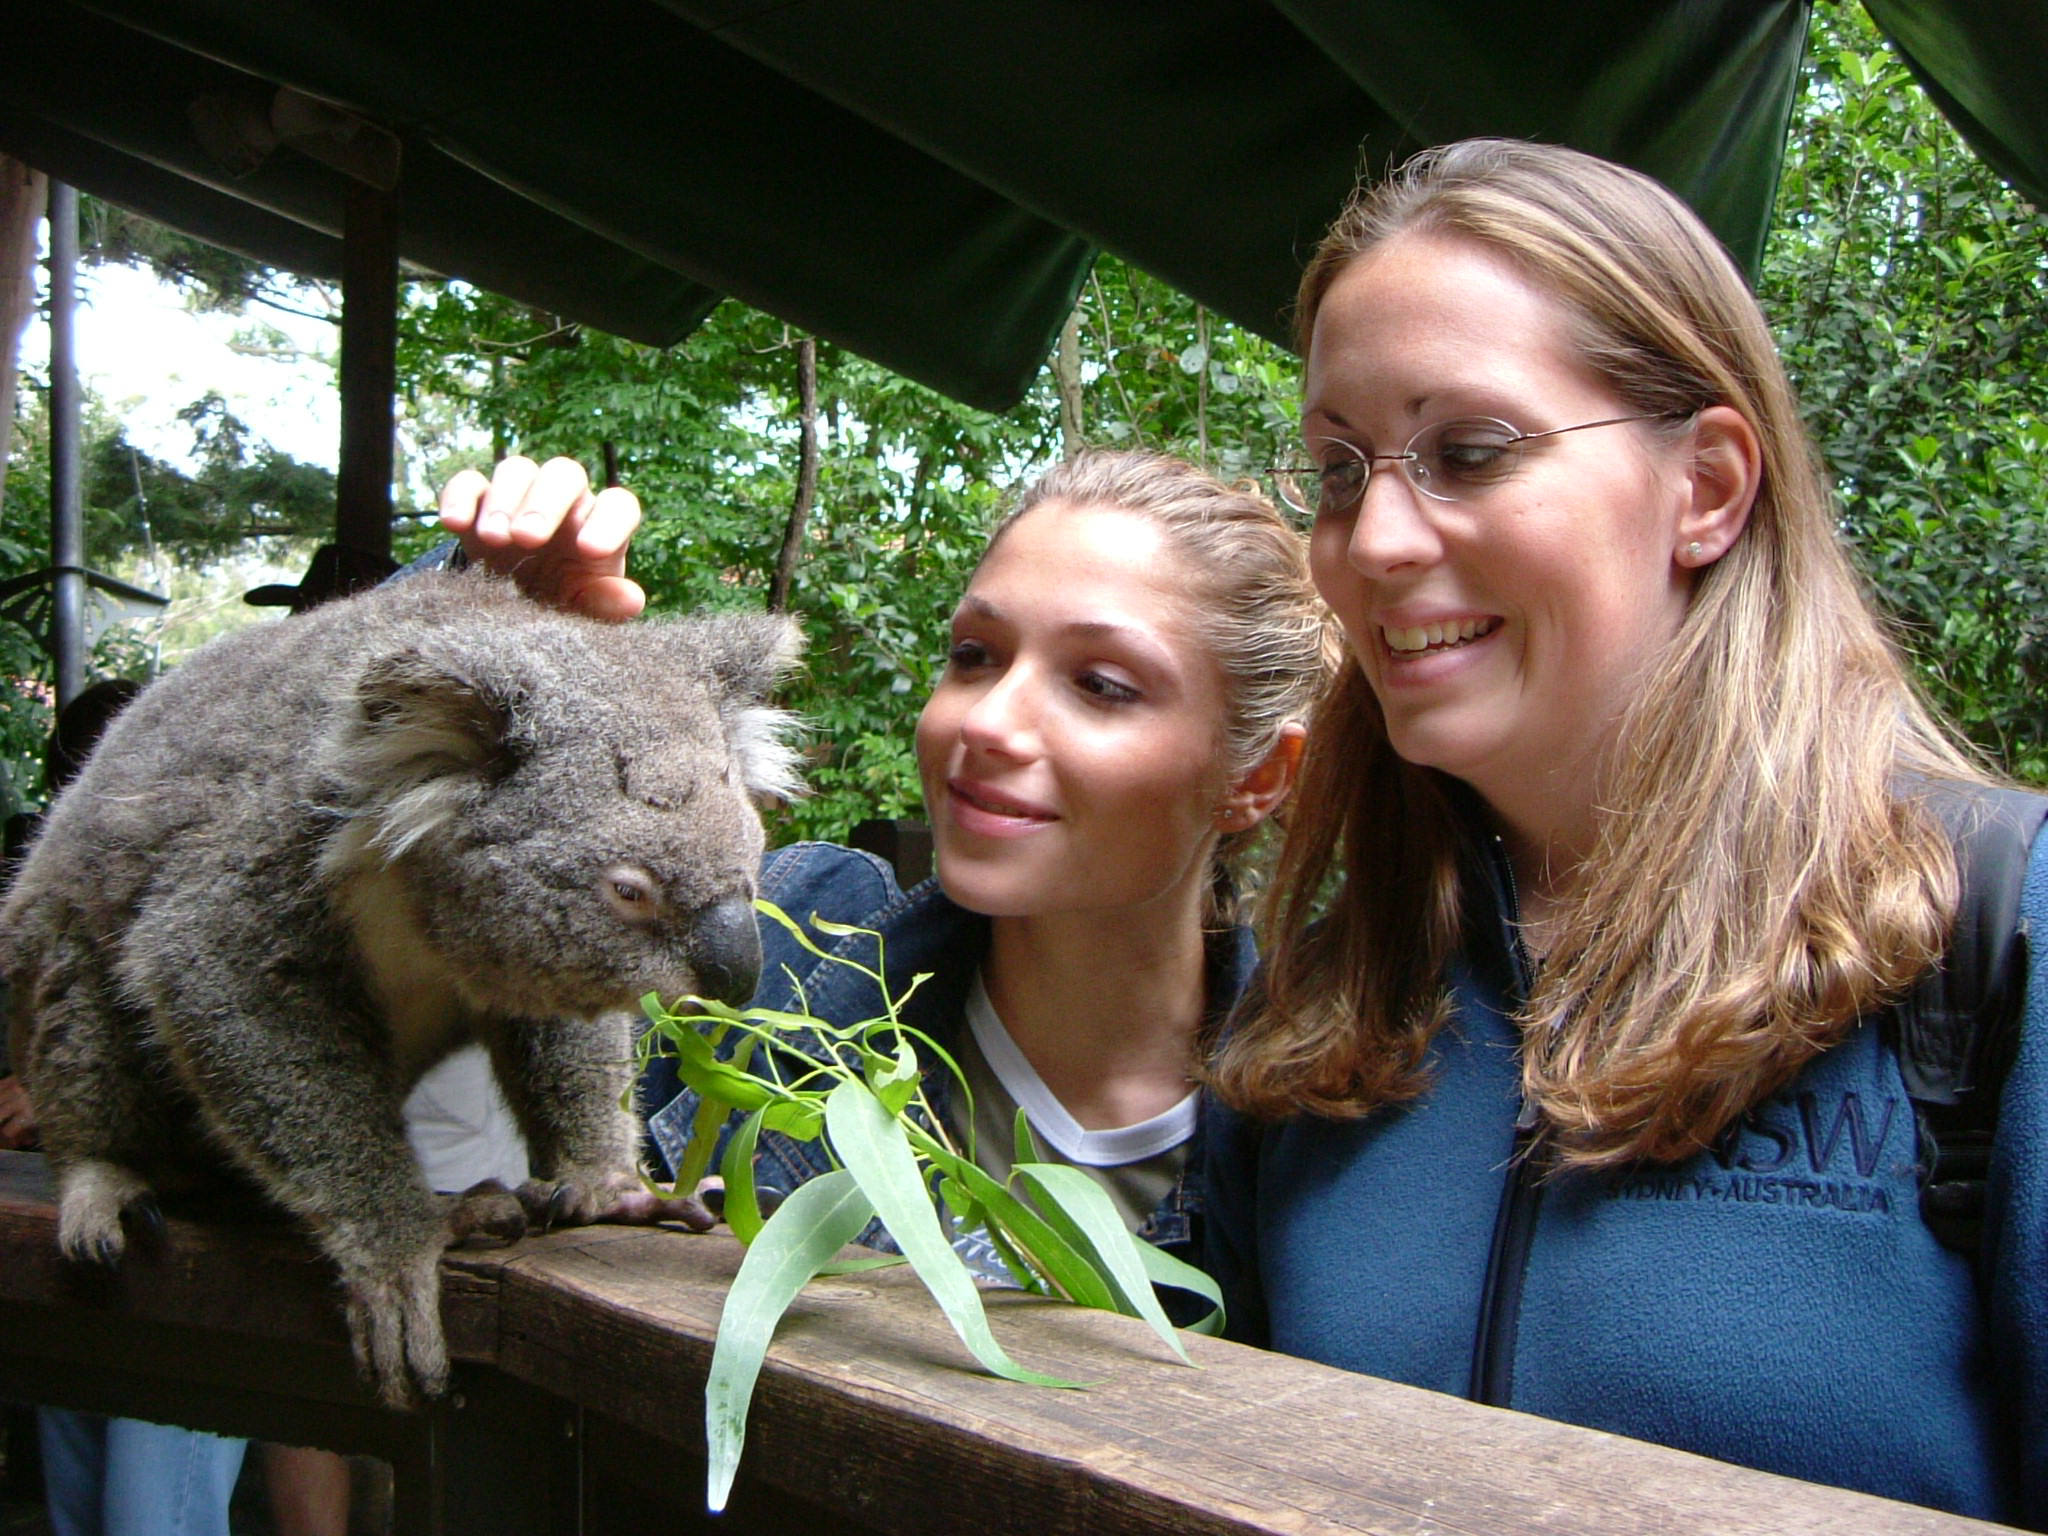 Two Girls and Koala